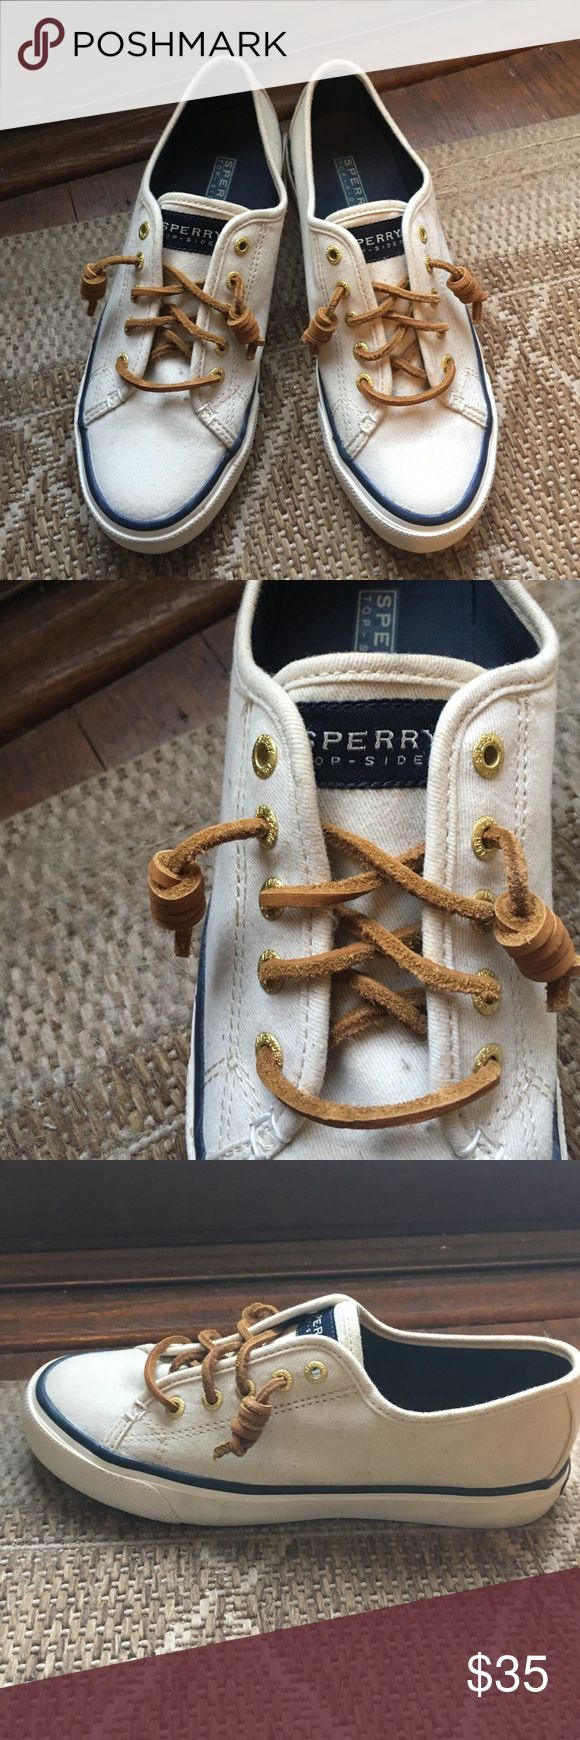 Creamy Sperry Sneakers Comfortable, practical, and fashionable Sperry Top-Sider sneakers. Lovely leather shoelaces. Gently worn, size 6. Sperry Top-Sider Shoes Sneakers